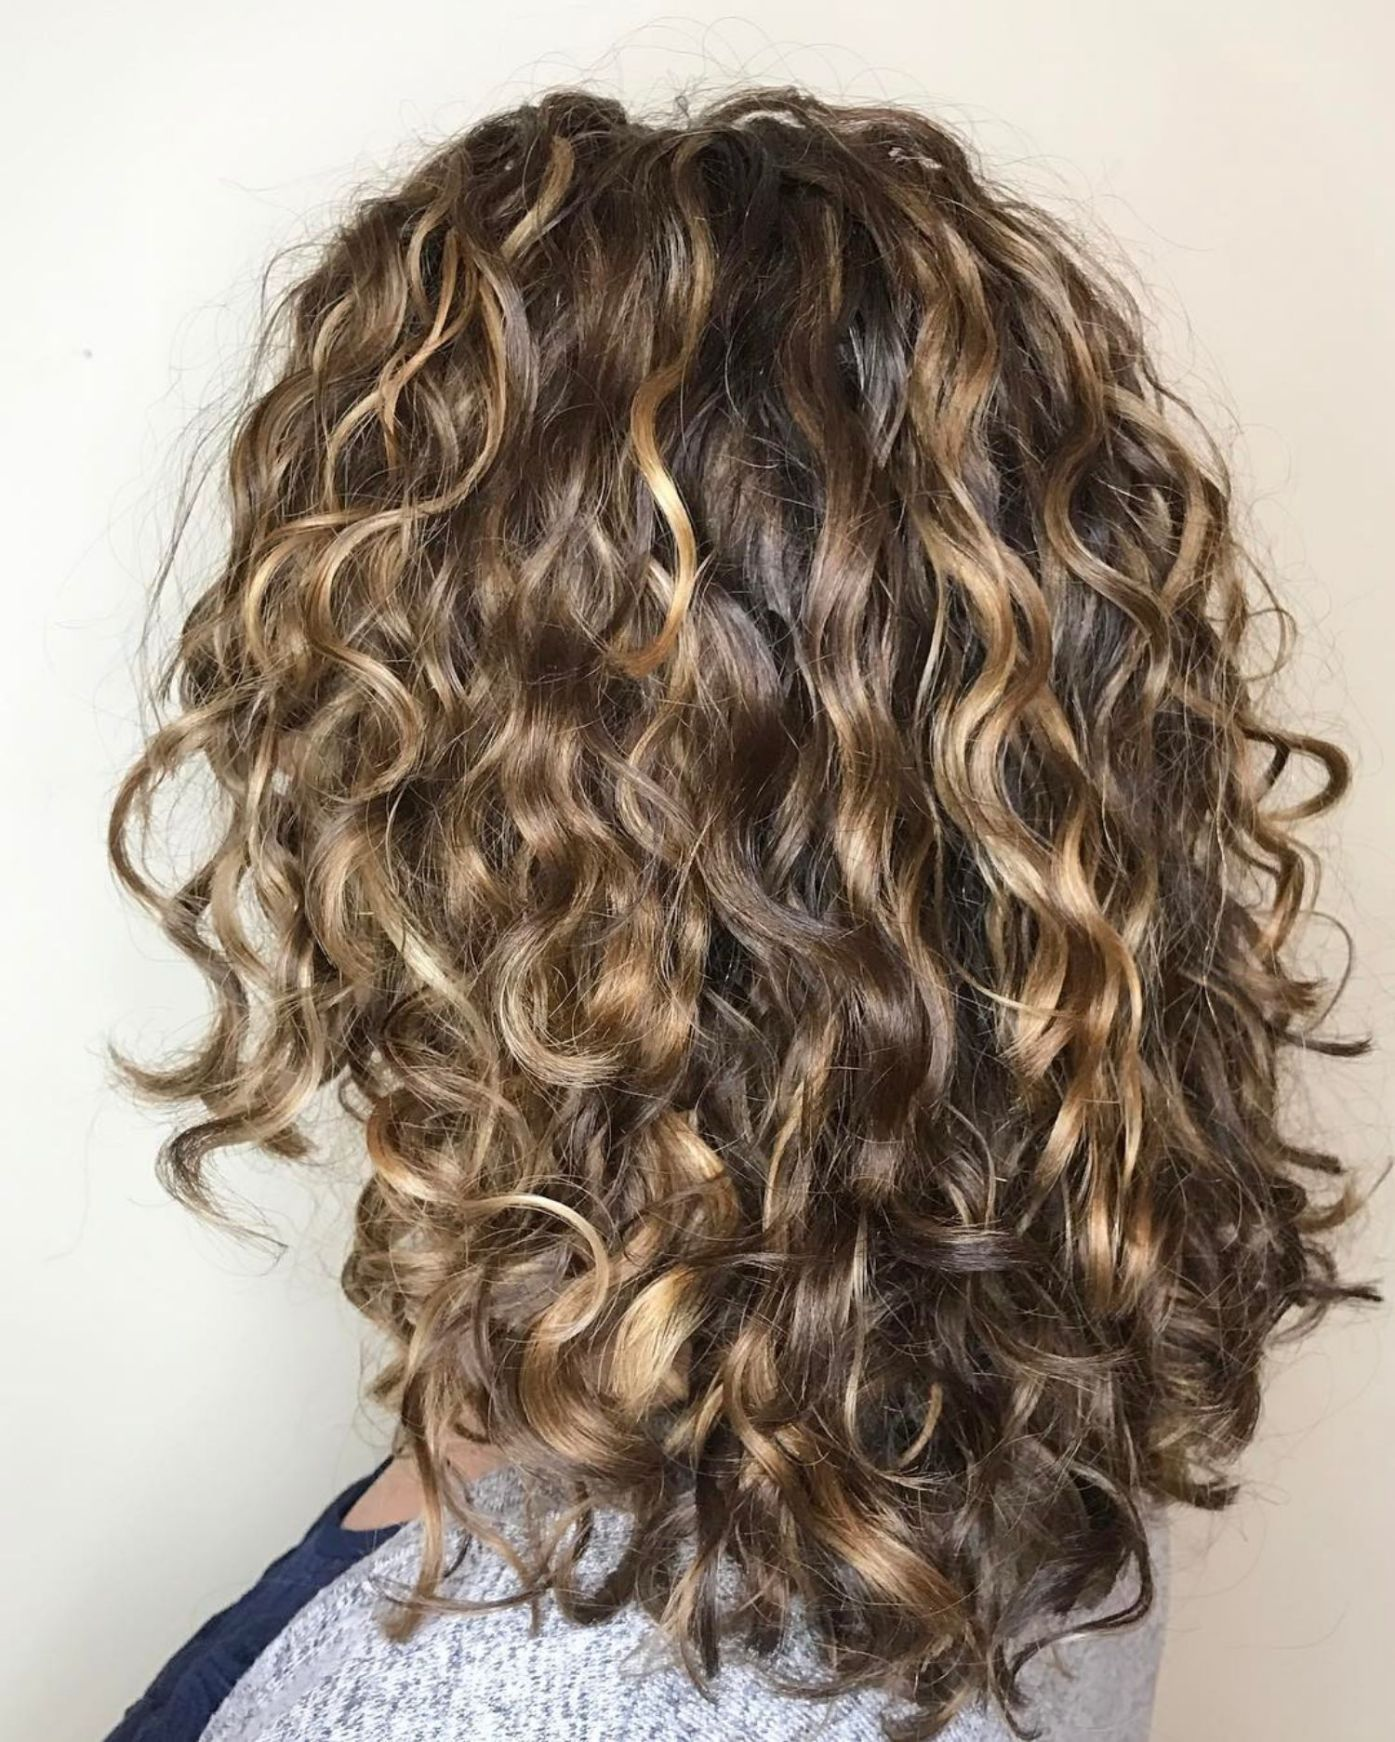 Brown dark curly hair with blonde highlights